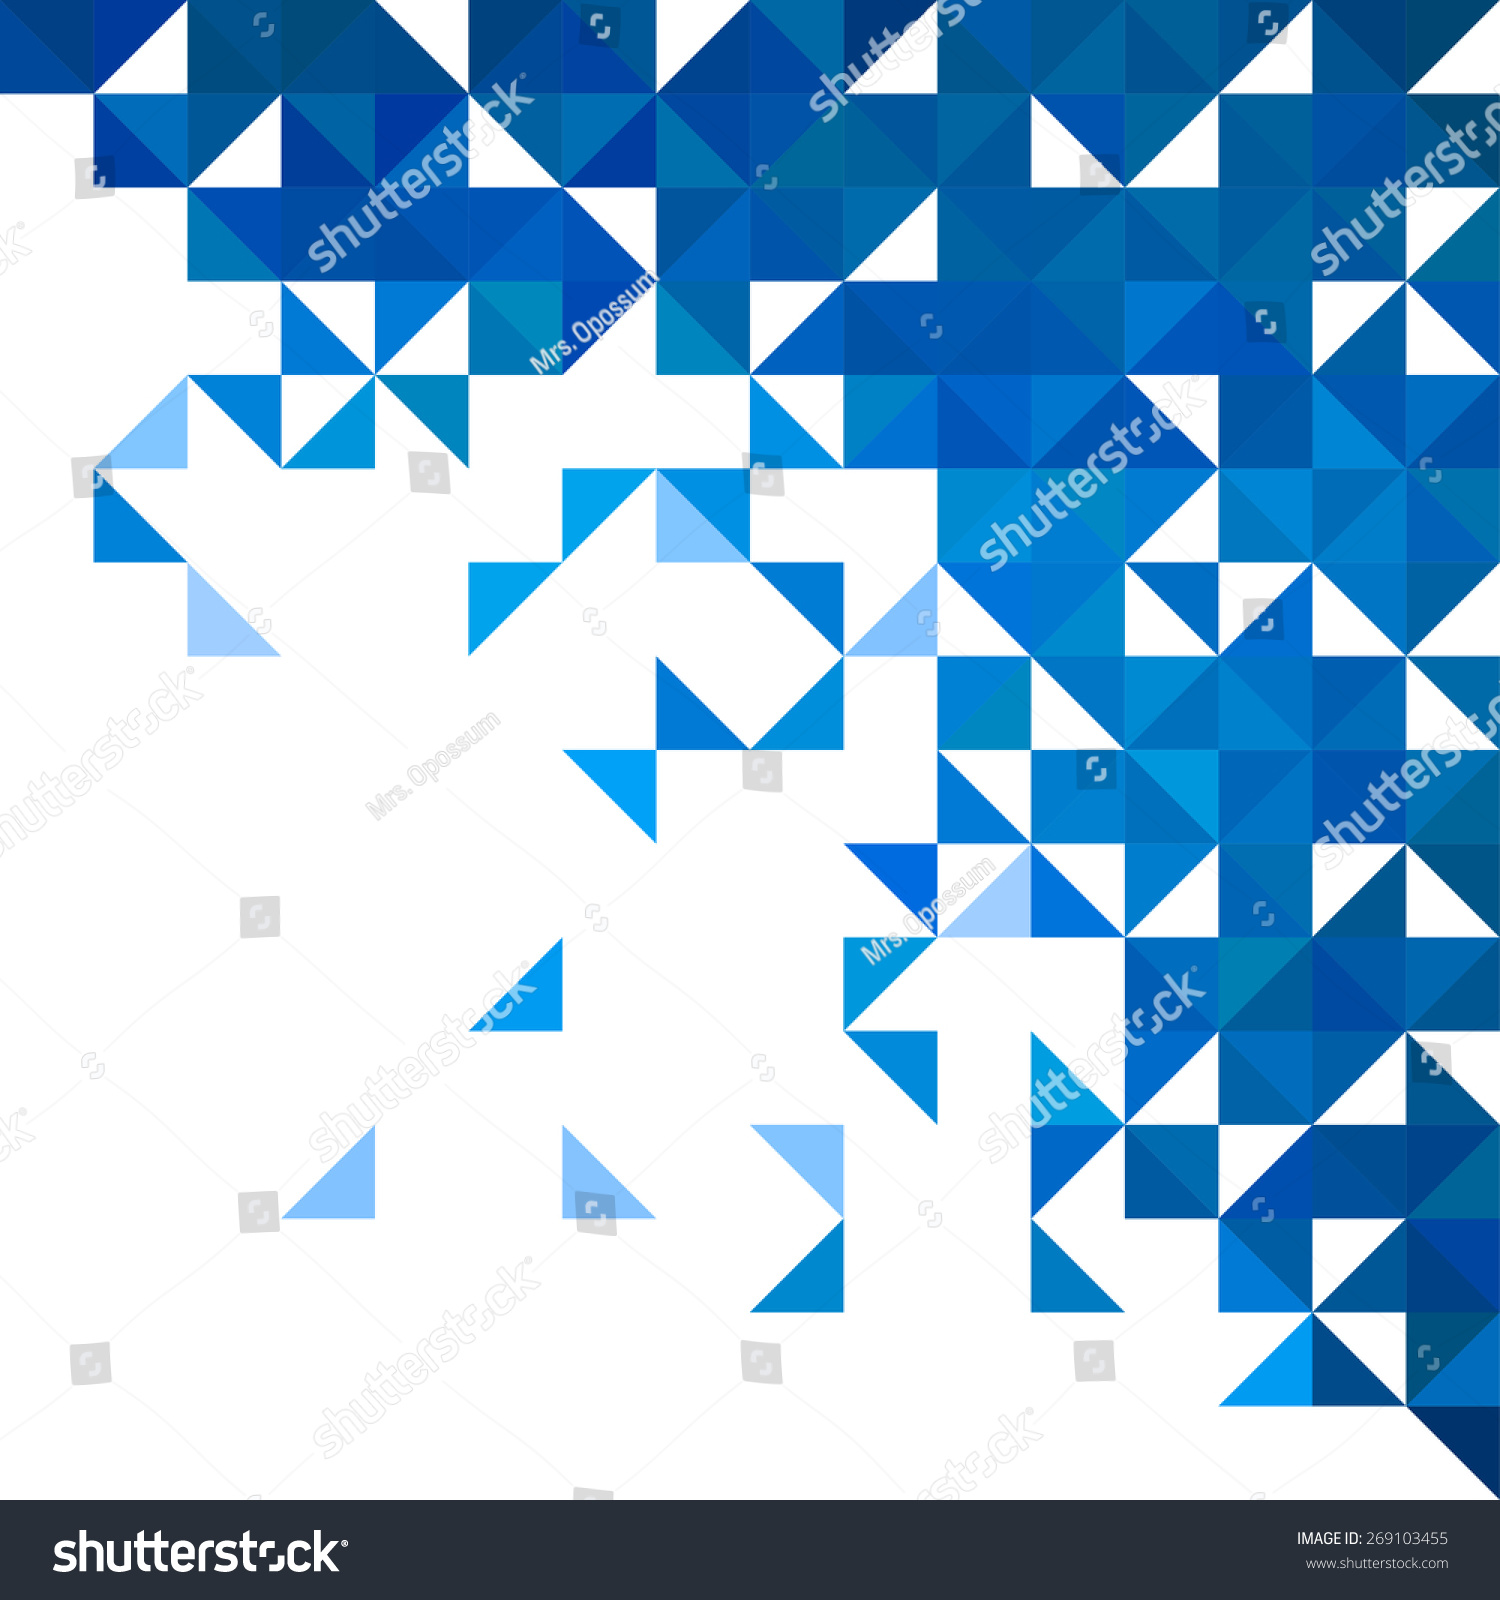 stock vector geometric background - photo #36